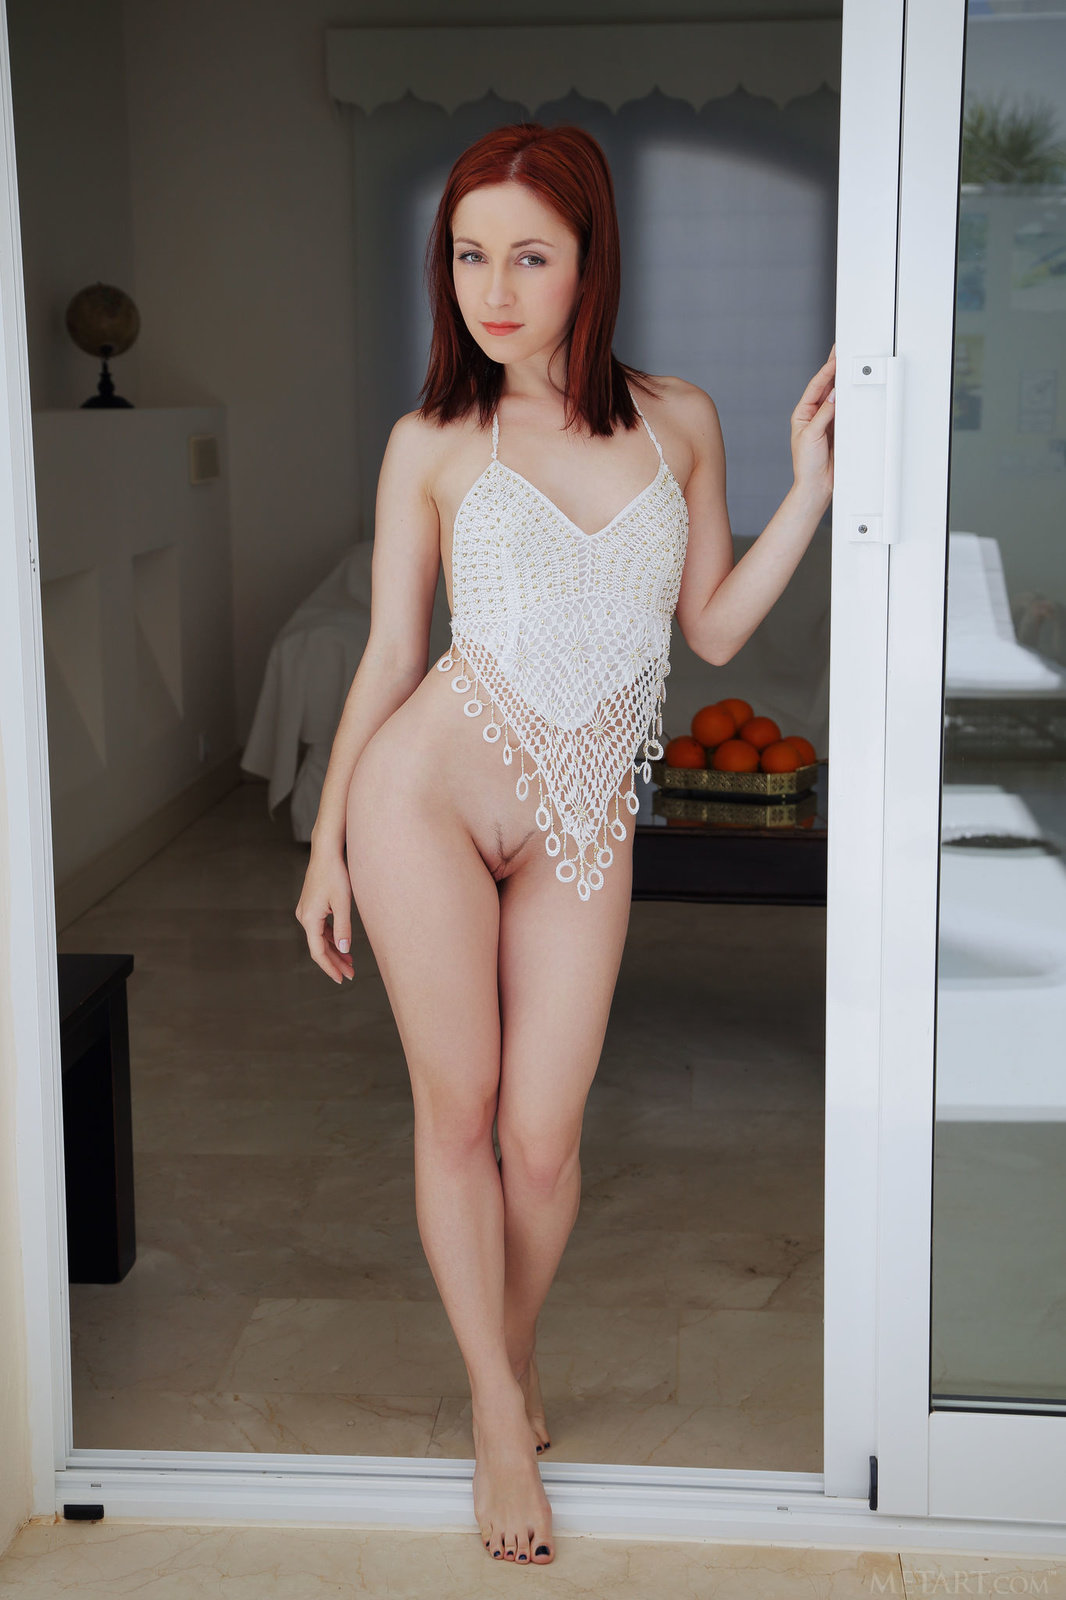 83net young naked[